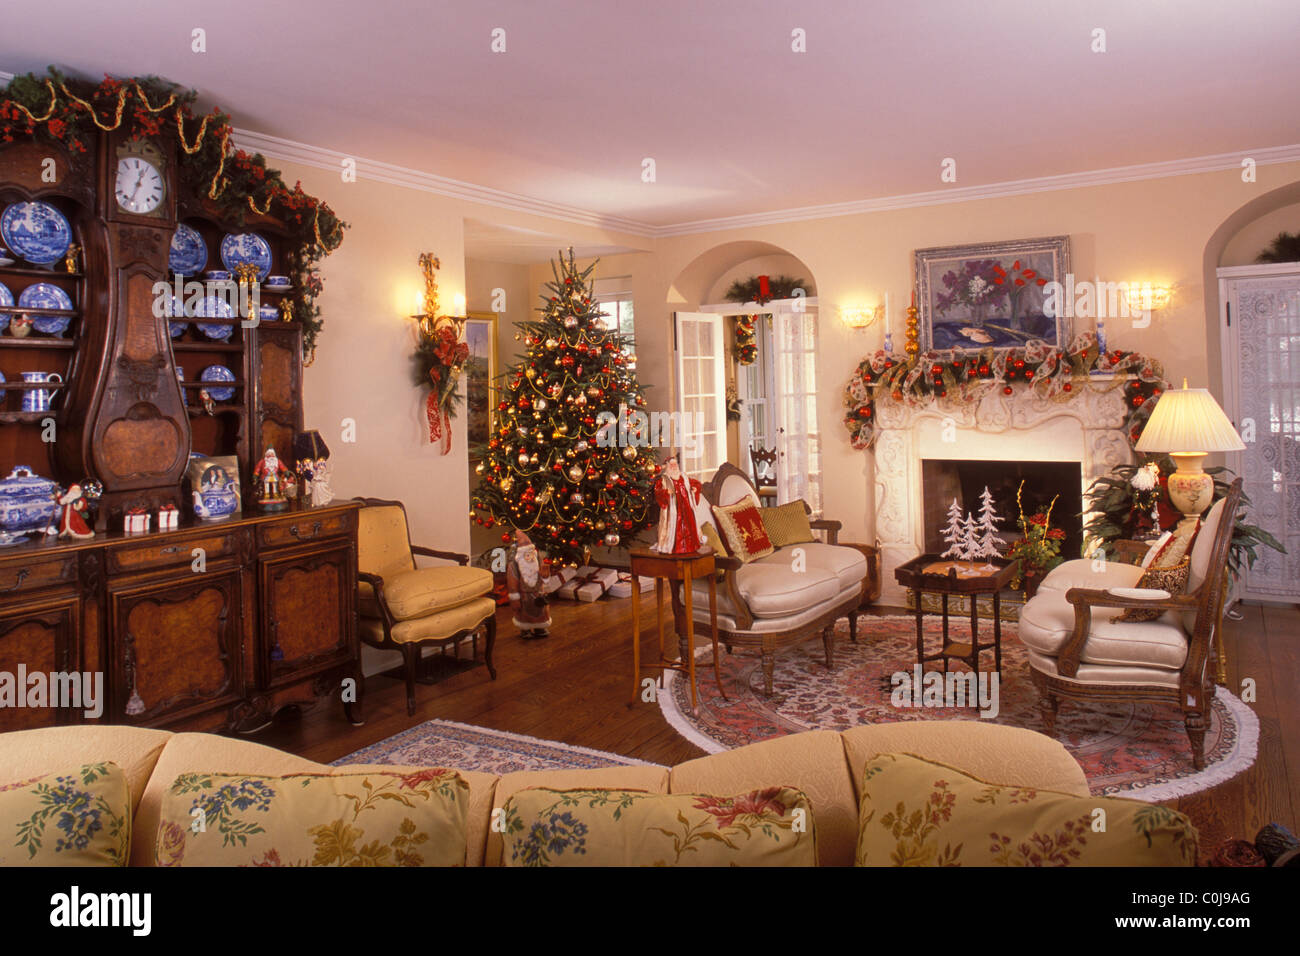 Living Room In Victorian Style Home Decorated For The Christmas Stock Photo Alamy